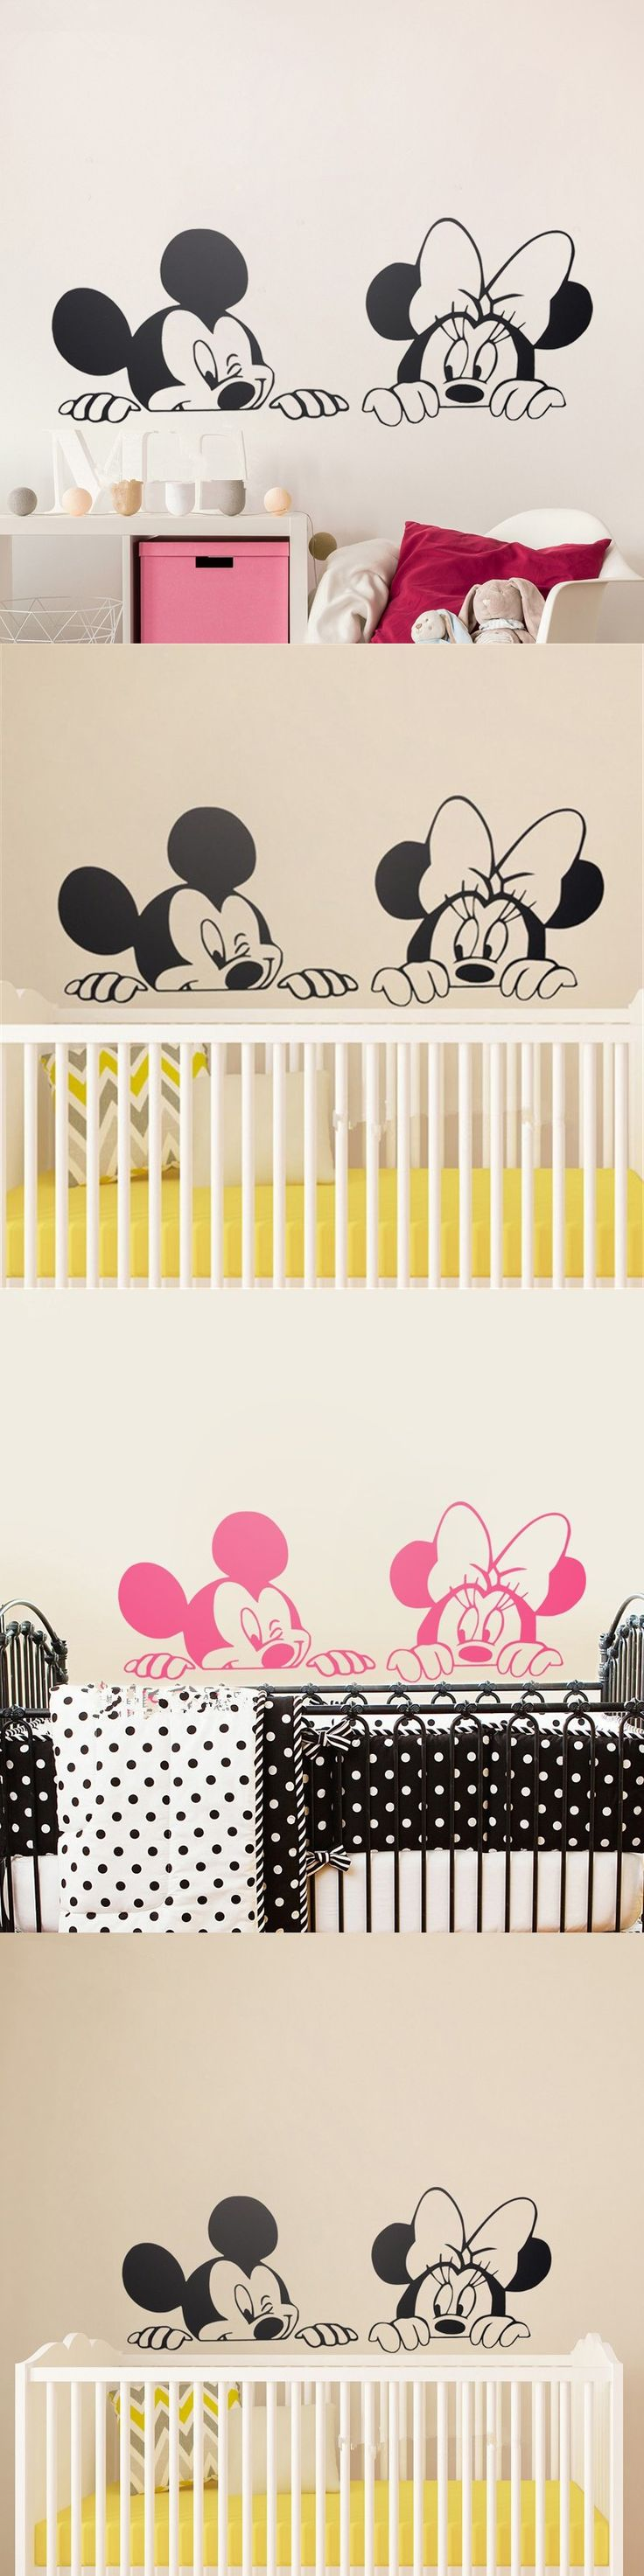 best 25 baby room wall decals ideas on pinterest nursery wall cartoon mickey minnie mouse cute animal vinyl wall stickers mural wallpaper baby room decor nursery wall decal home decor